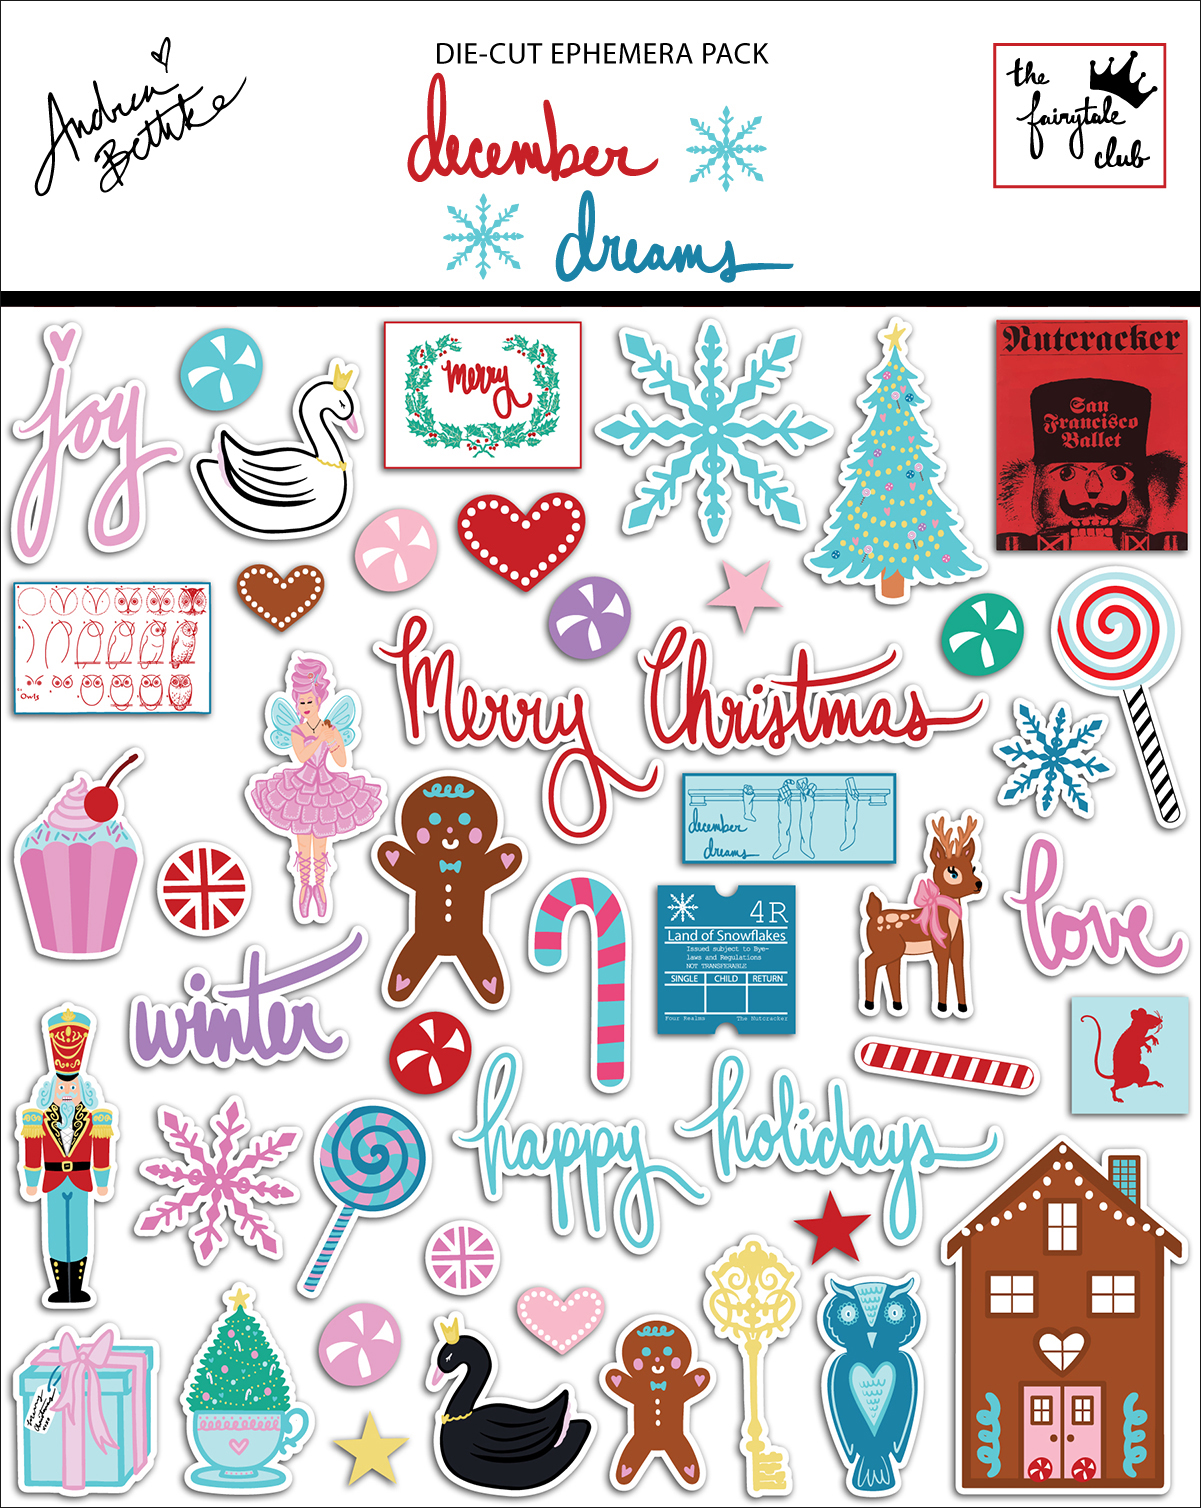 December Dreams - Die Cut Ephemera Pack with Package.jpg